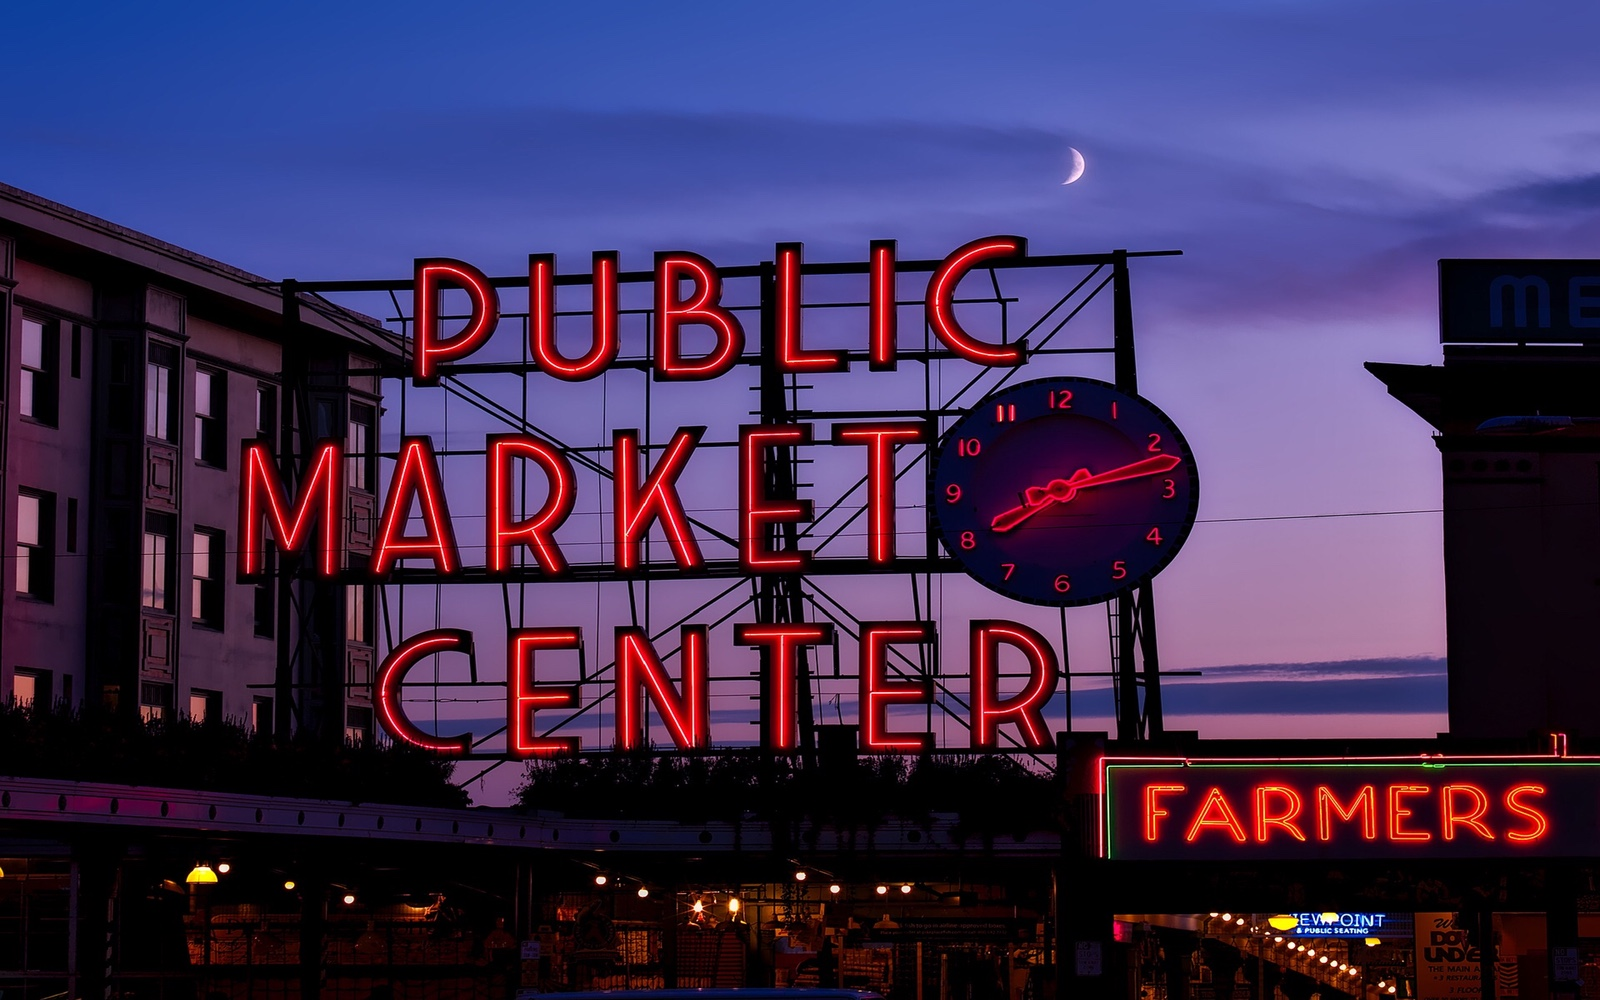 The Pike Place Market at night